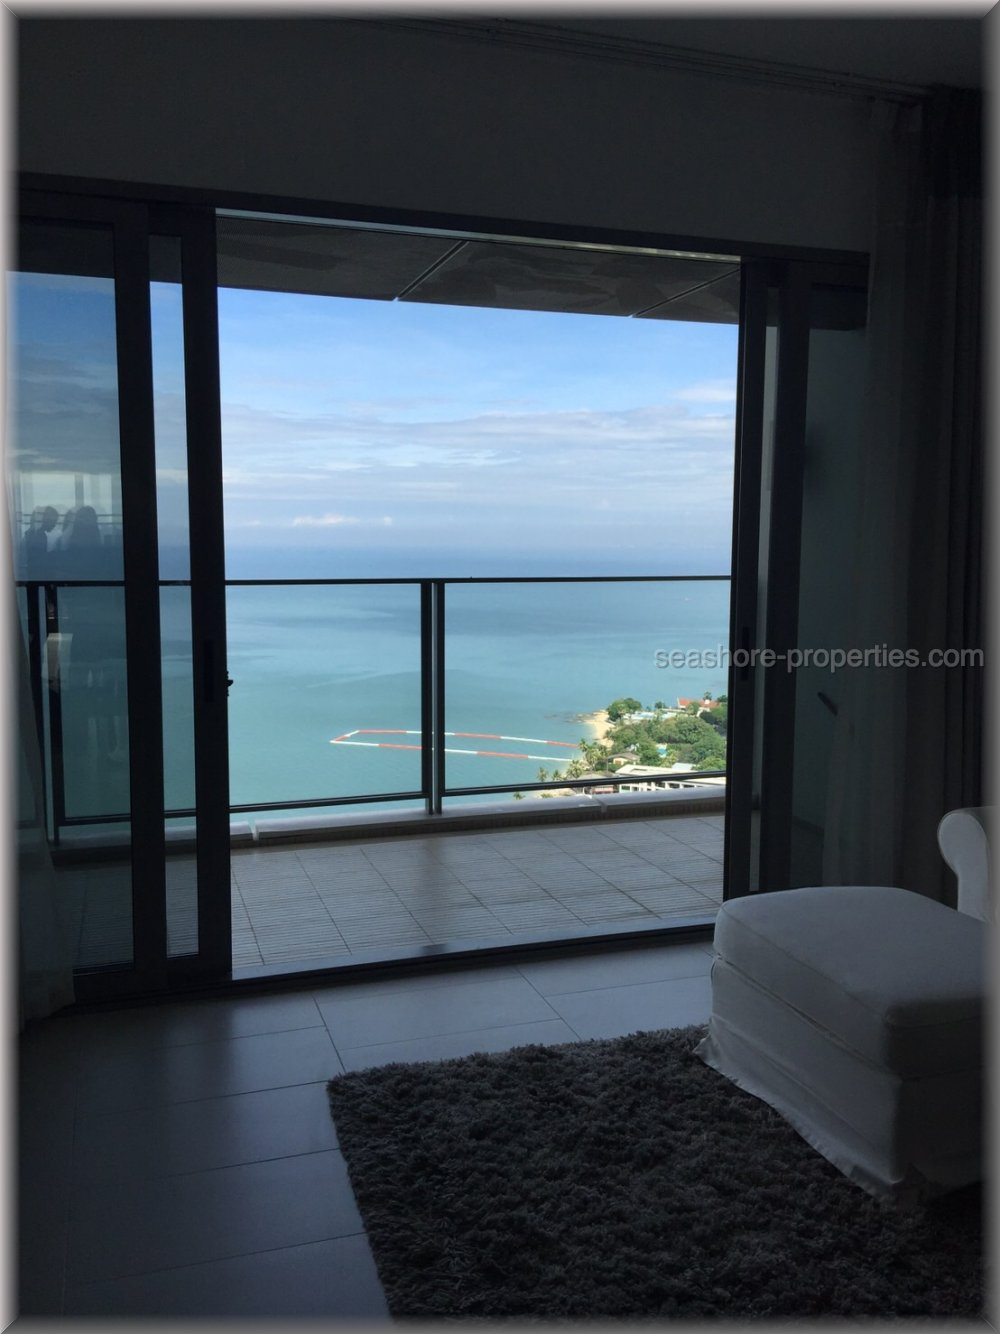 pic-7-Seashore Properties (Thailand) Co. Ltd. Northpoint Condominium   for sale in Wong Amat Pattaya